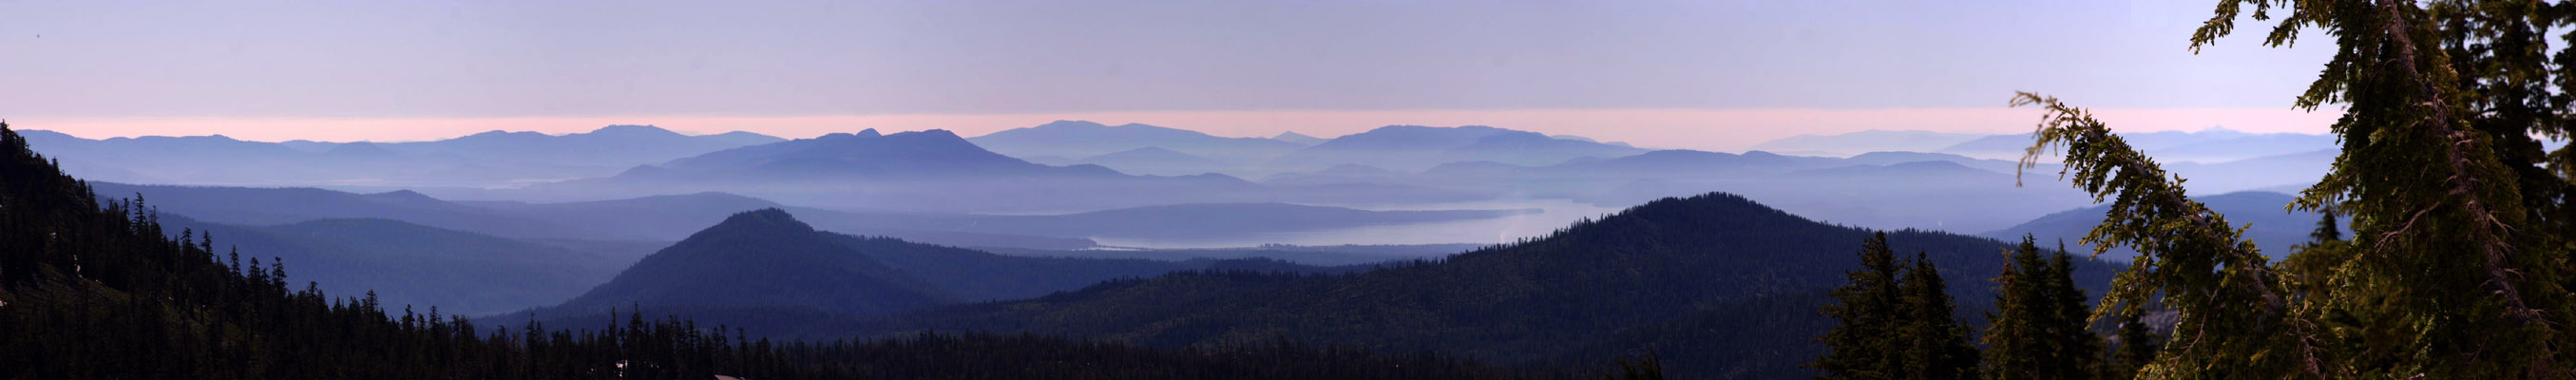 Photo of View from Lassen National Park